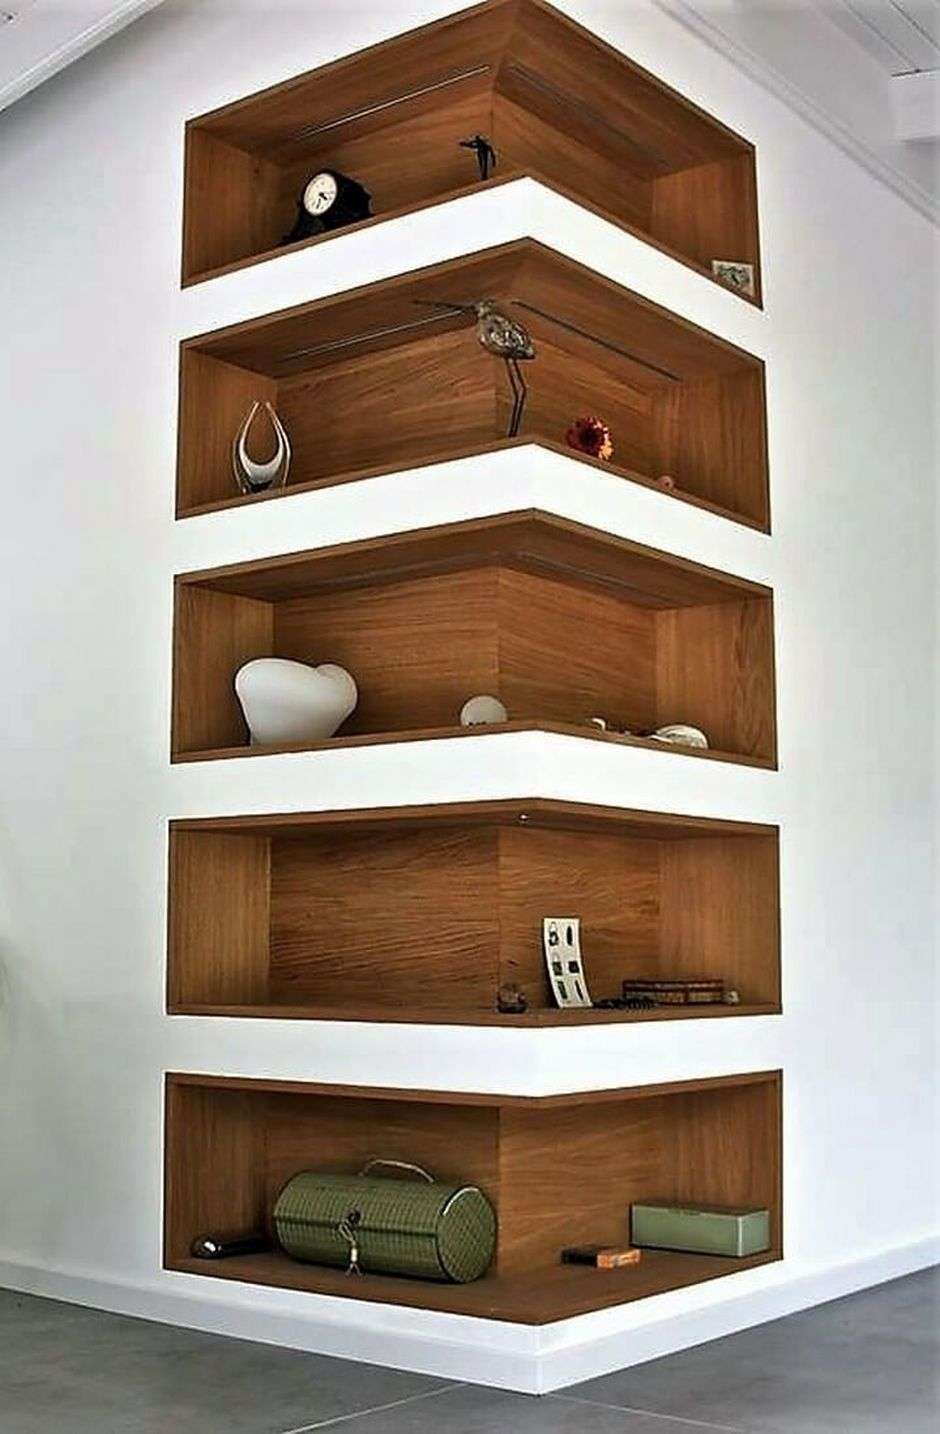 Corner Showcase Designs For Living Room: Corner Wall Shelves Design Ideas For Living Room 17